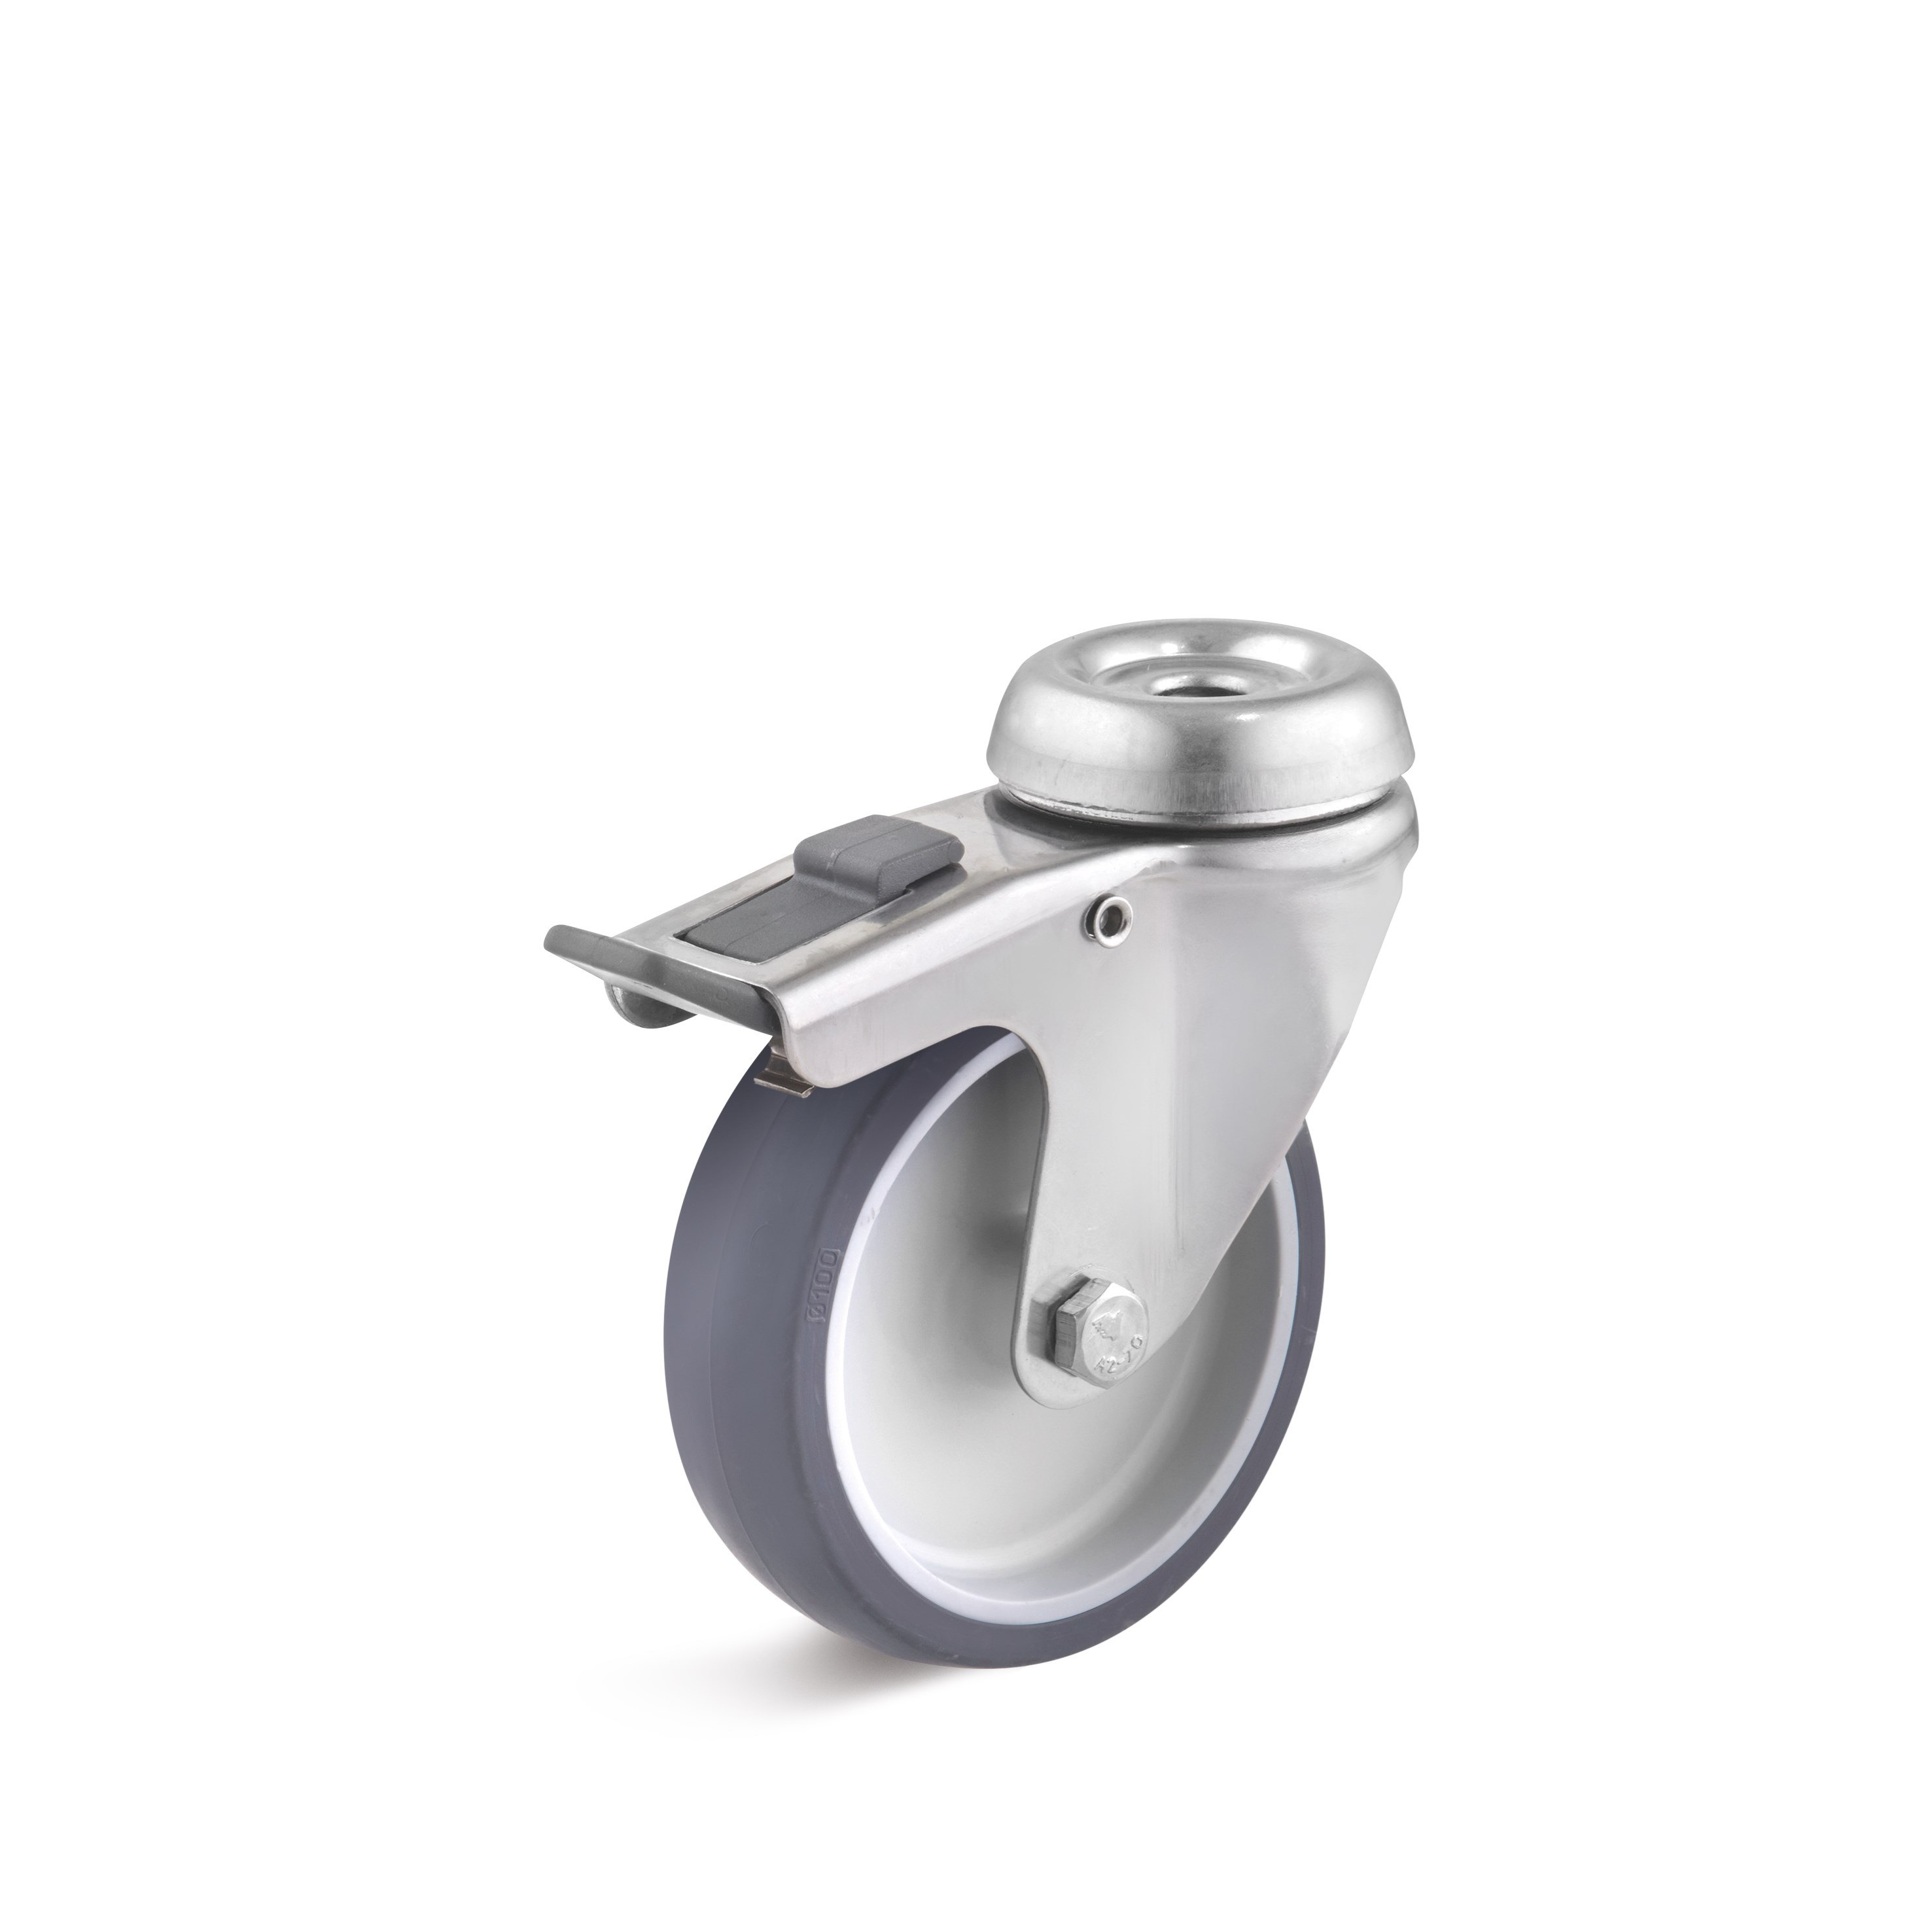 Stainless steel swivel castor with double stop and bolt hole, thermoplastic wheel